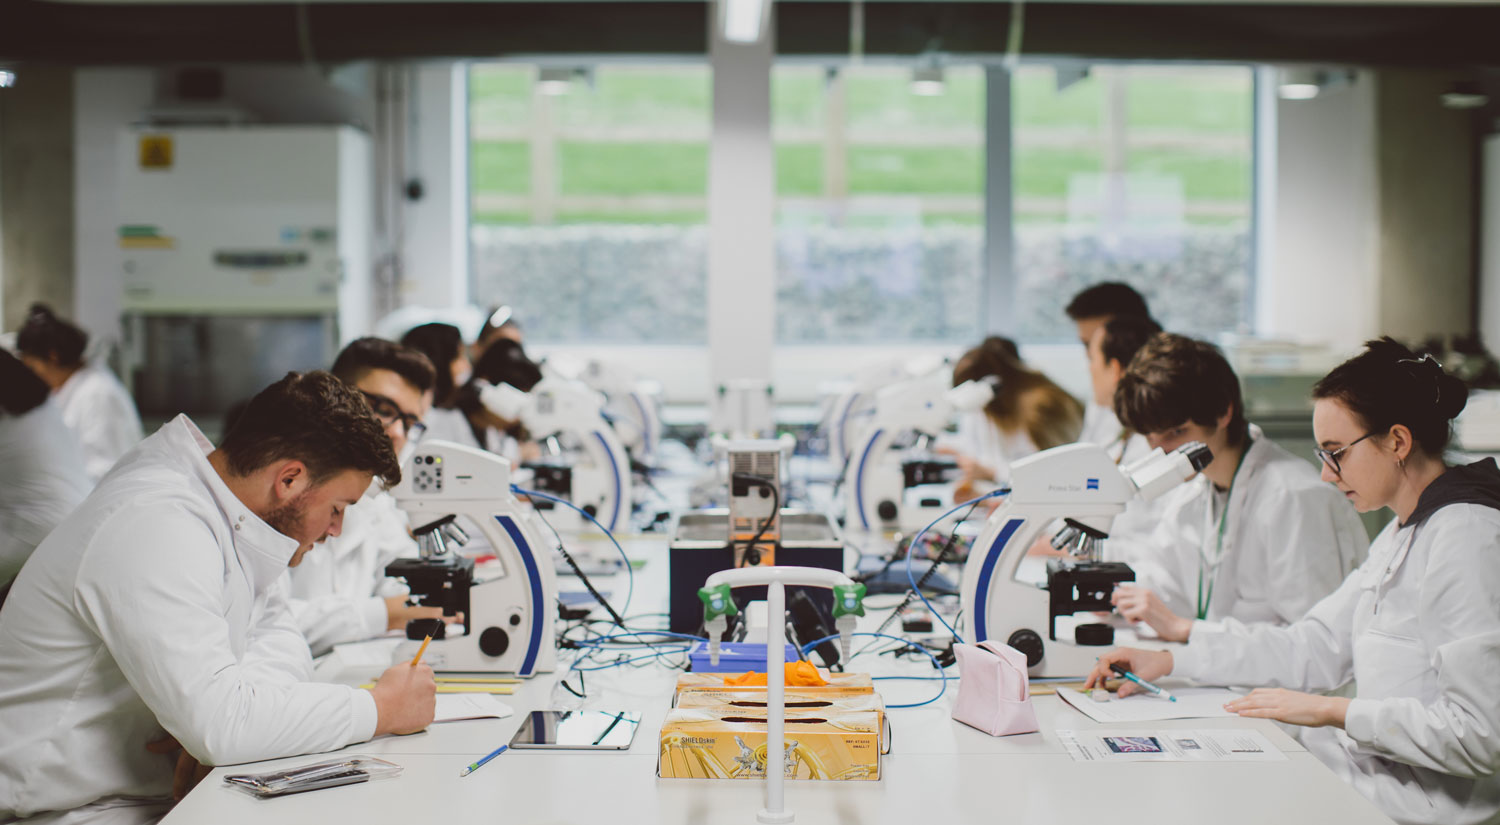 Students sitting in a lab wearing white coats looking into microscopes